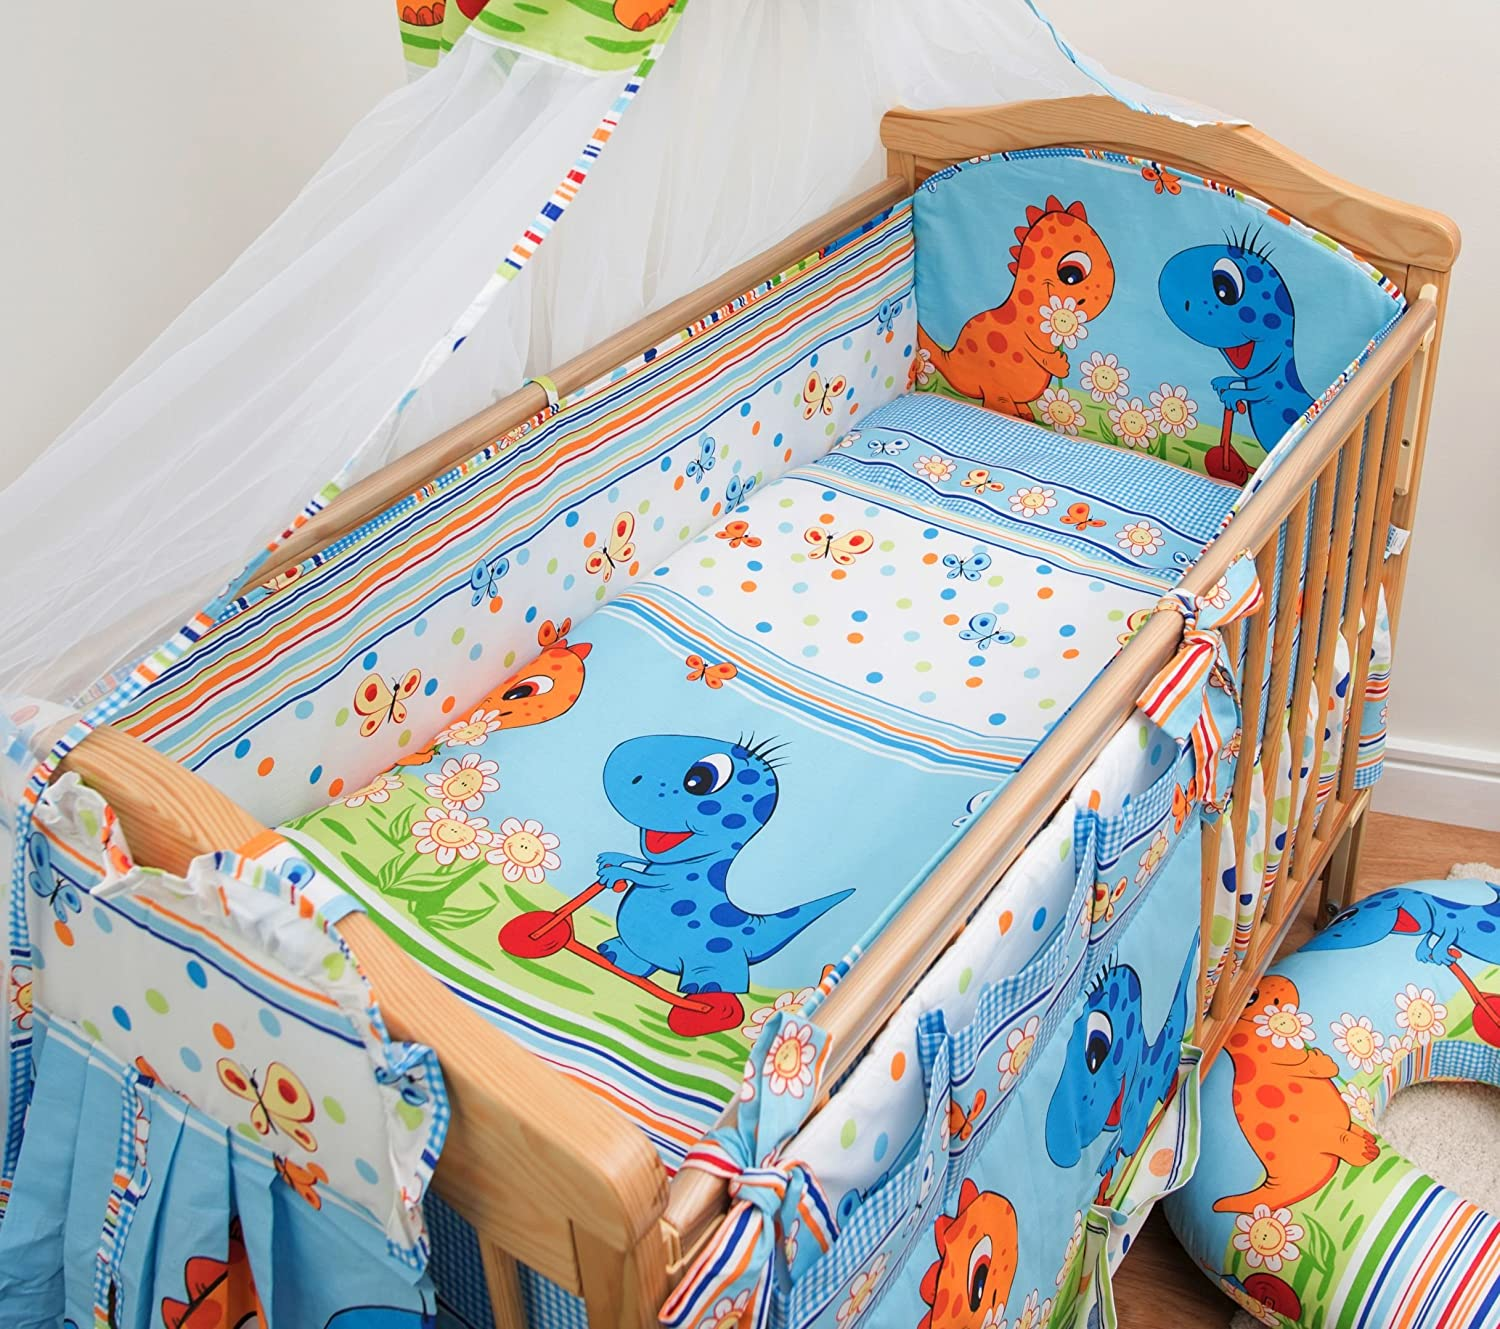 Nursery Baby Cot Bed Bumper / Pad 60x120 / 360cm Long All Round Bumper - Dino Blue Baby Comfort